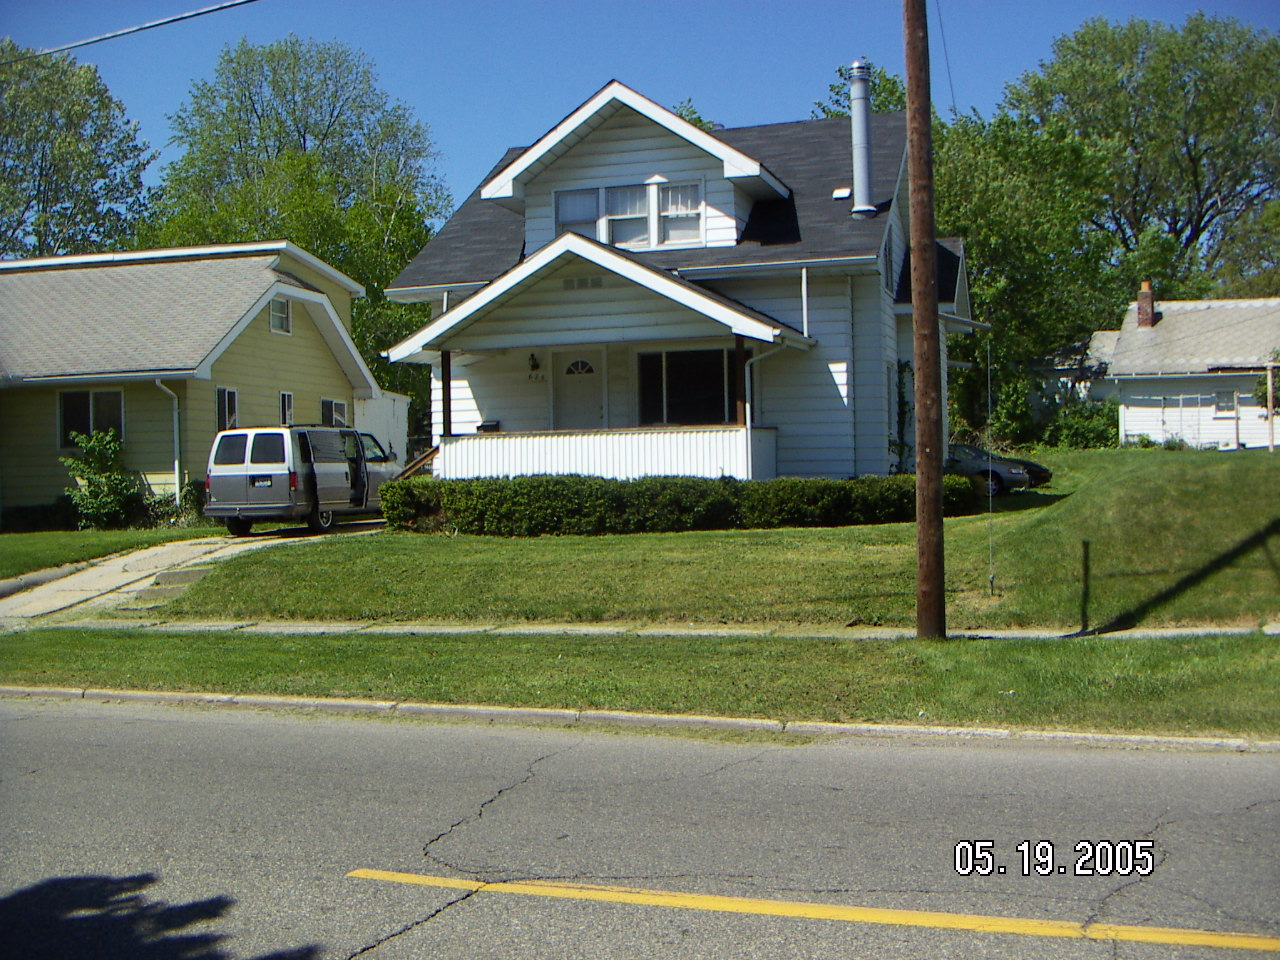 My first house and rental property